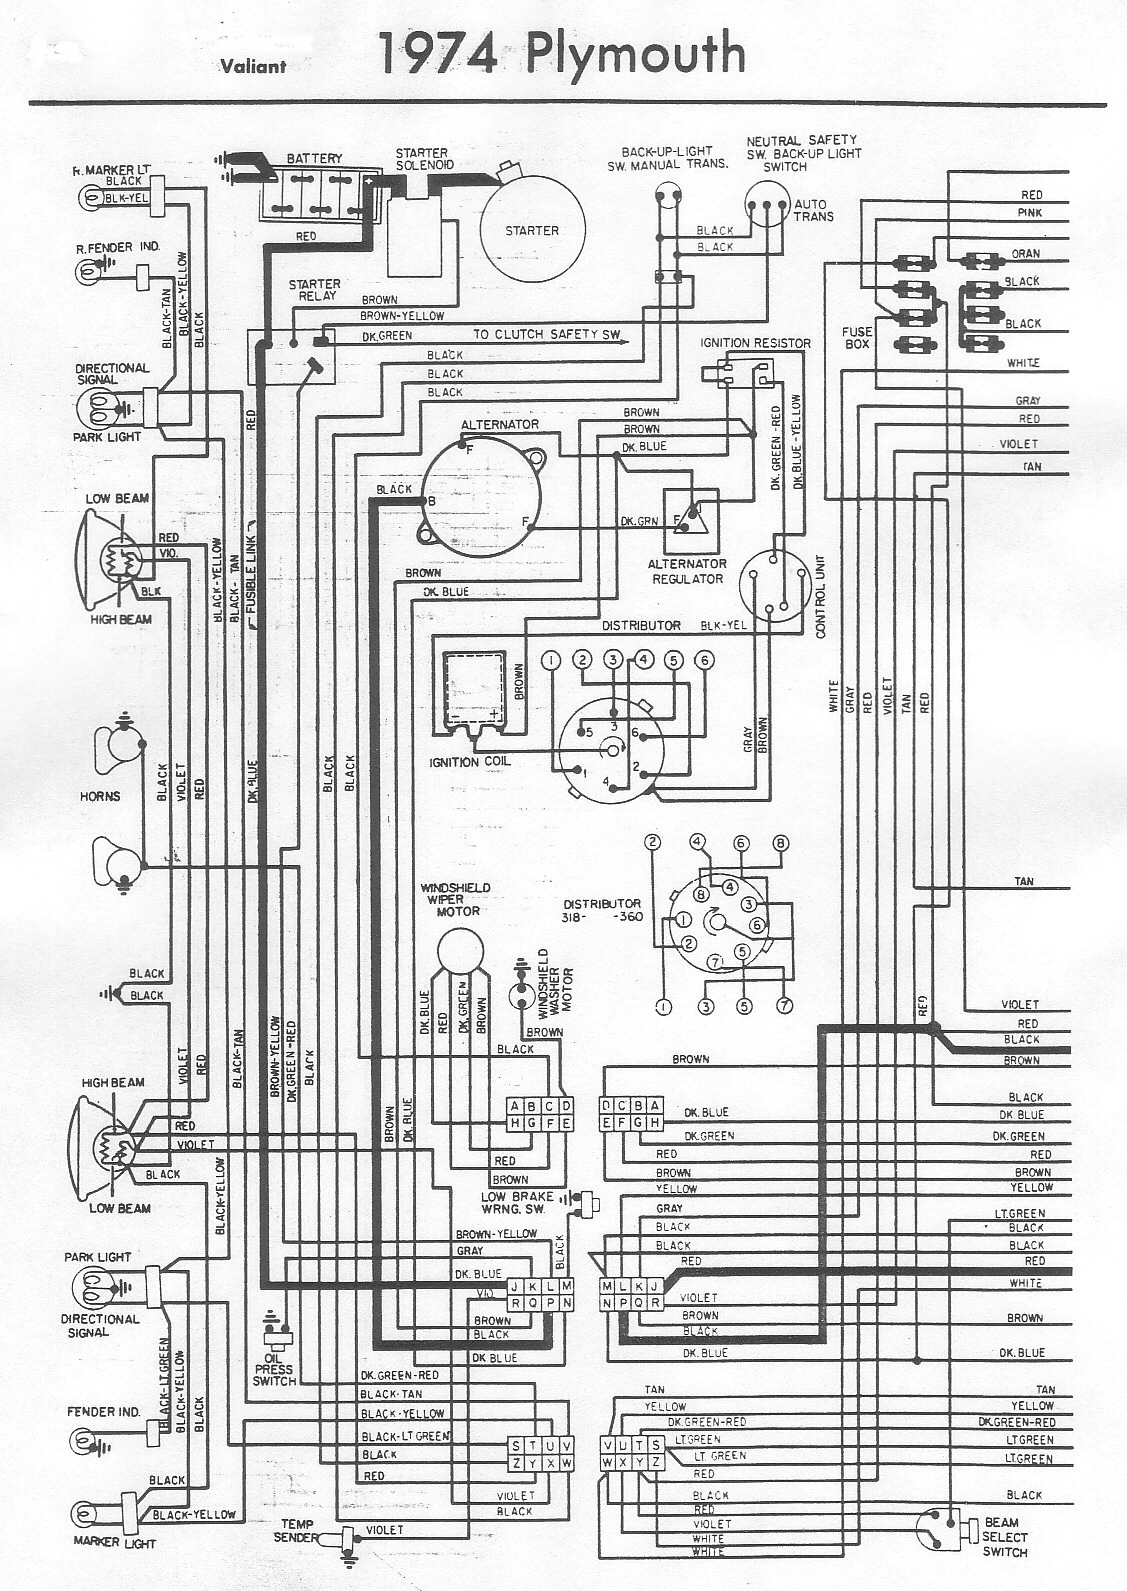 1973 Plymouth Barracuda Fuse Box Diagram Custom Wiring 1974 Corvette Duster Example Electrical Rh 162 212 157 63 1967